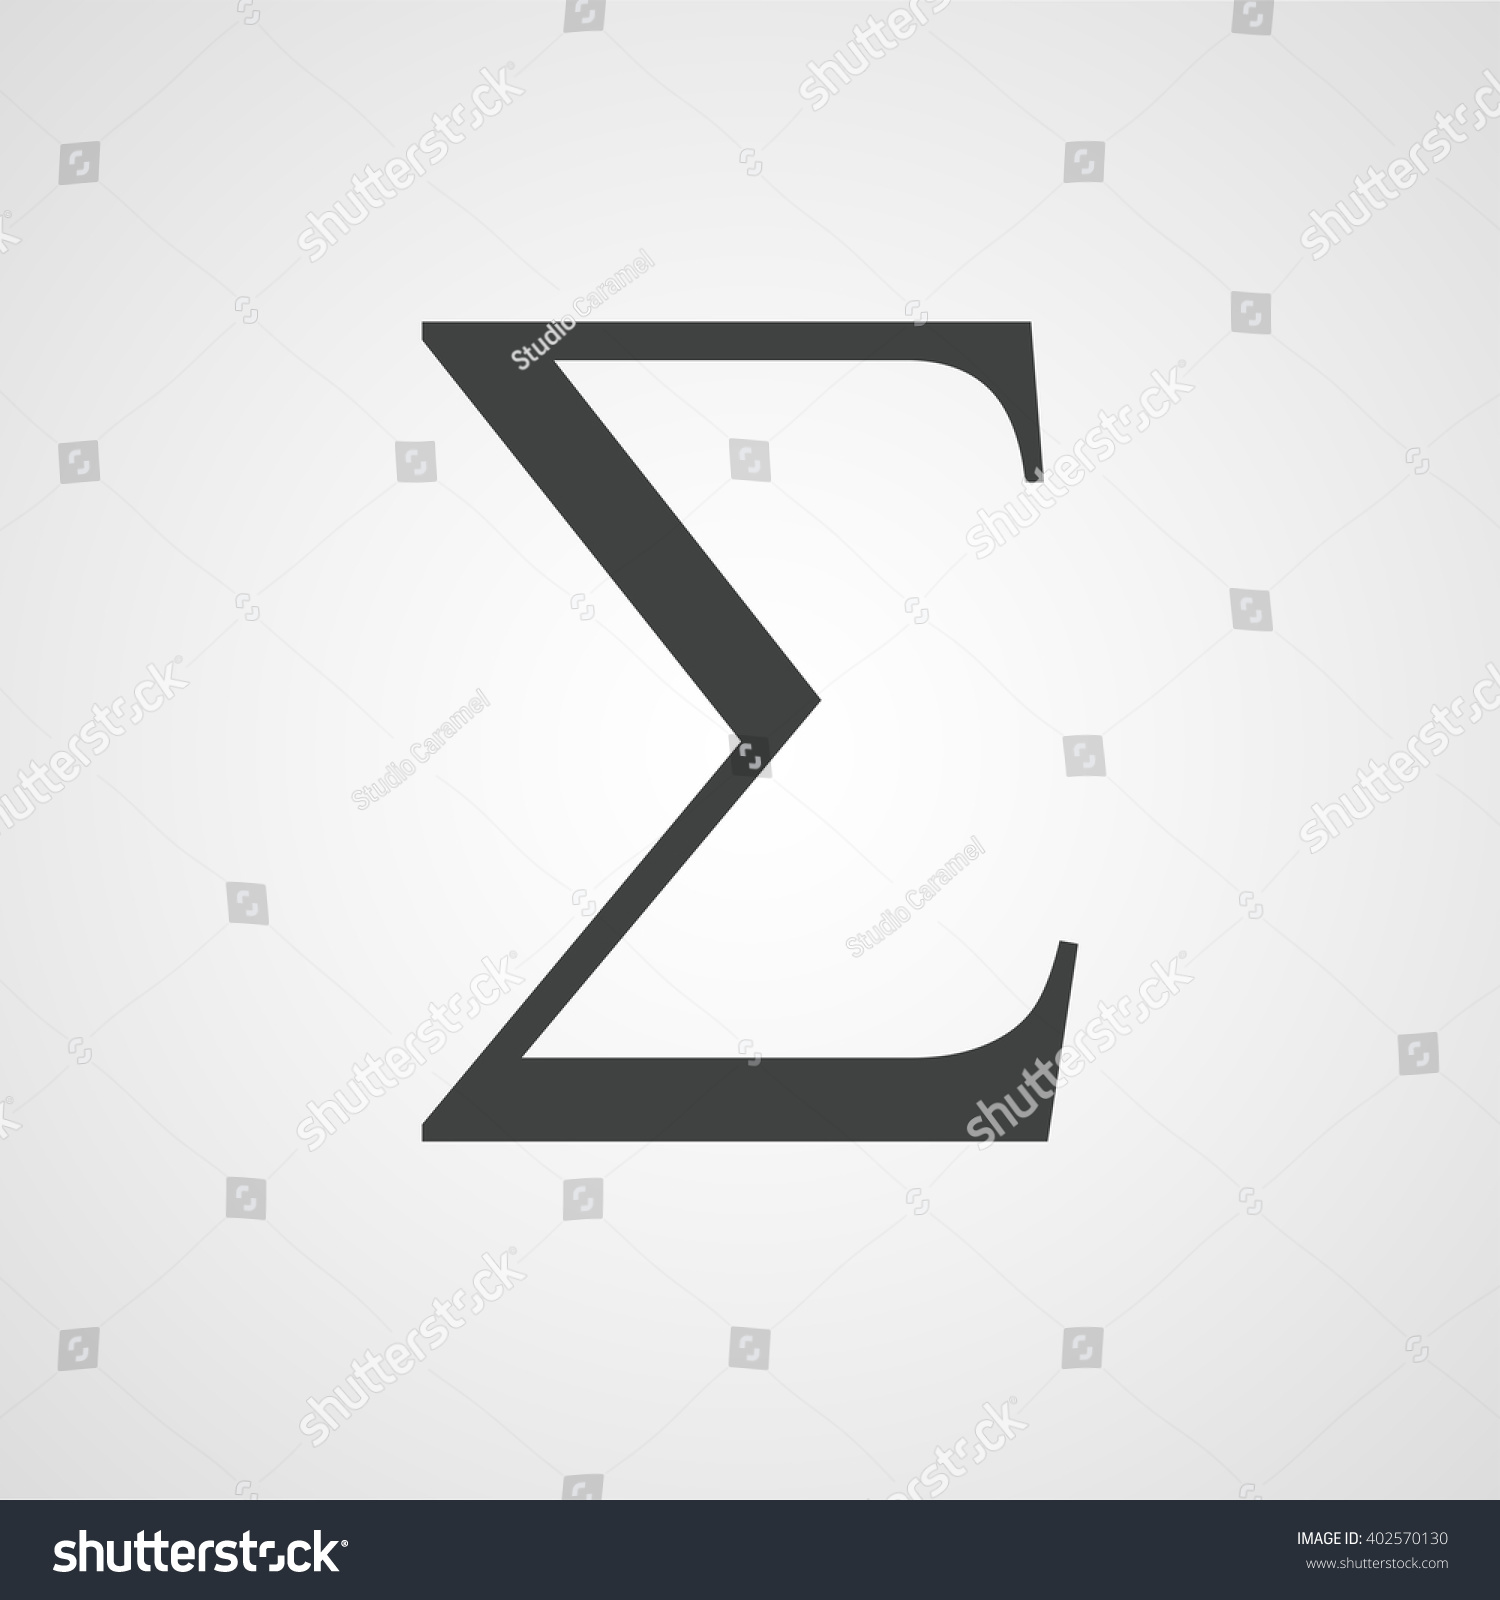 Sigma symbol latin letter sign vector stock vector 402570130 sigma symbol latin letter sign vector biocorpaavc Choice Image